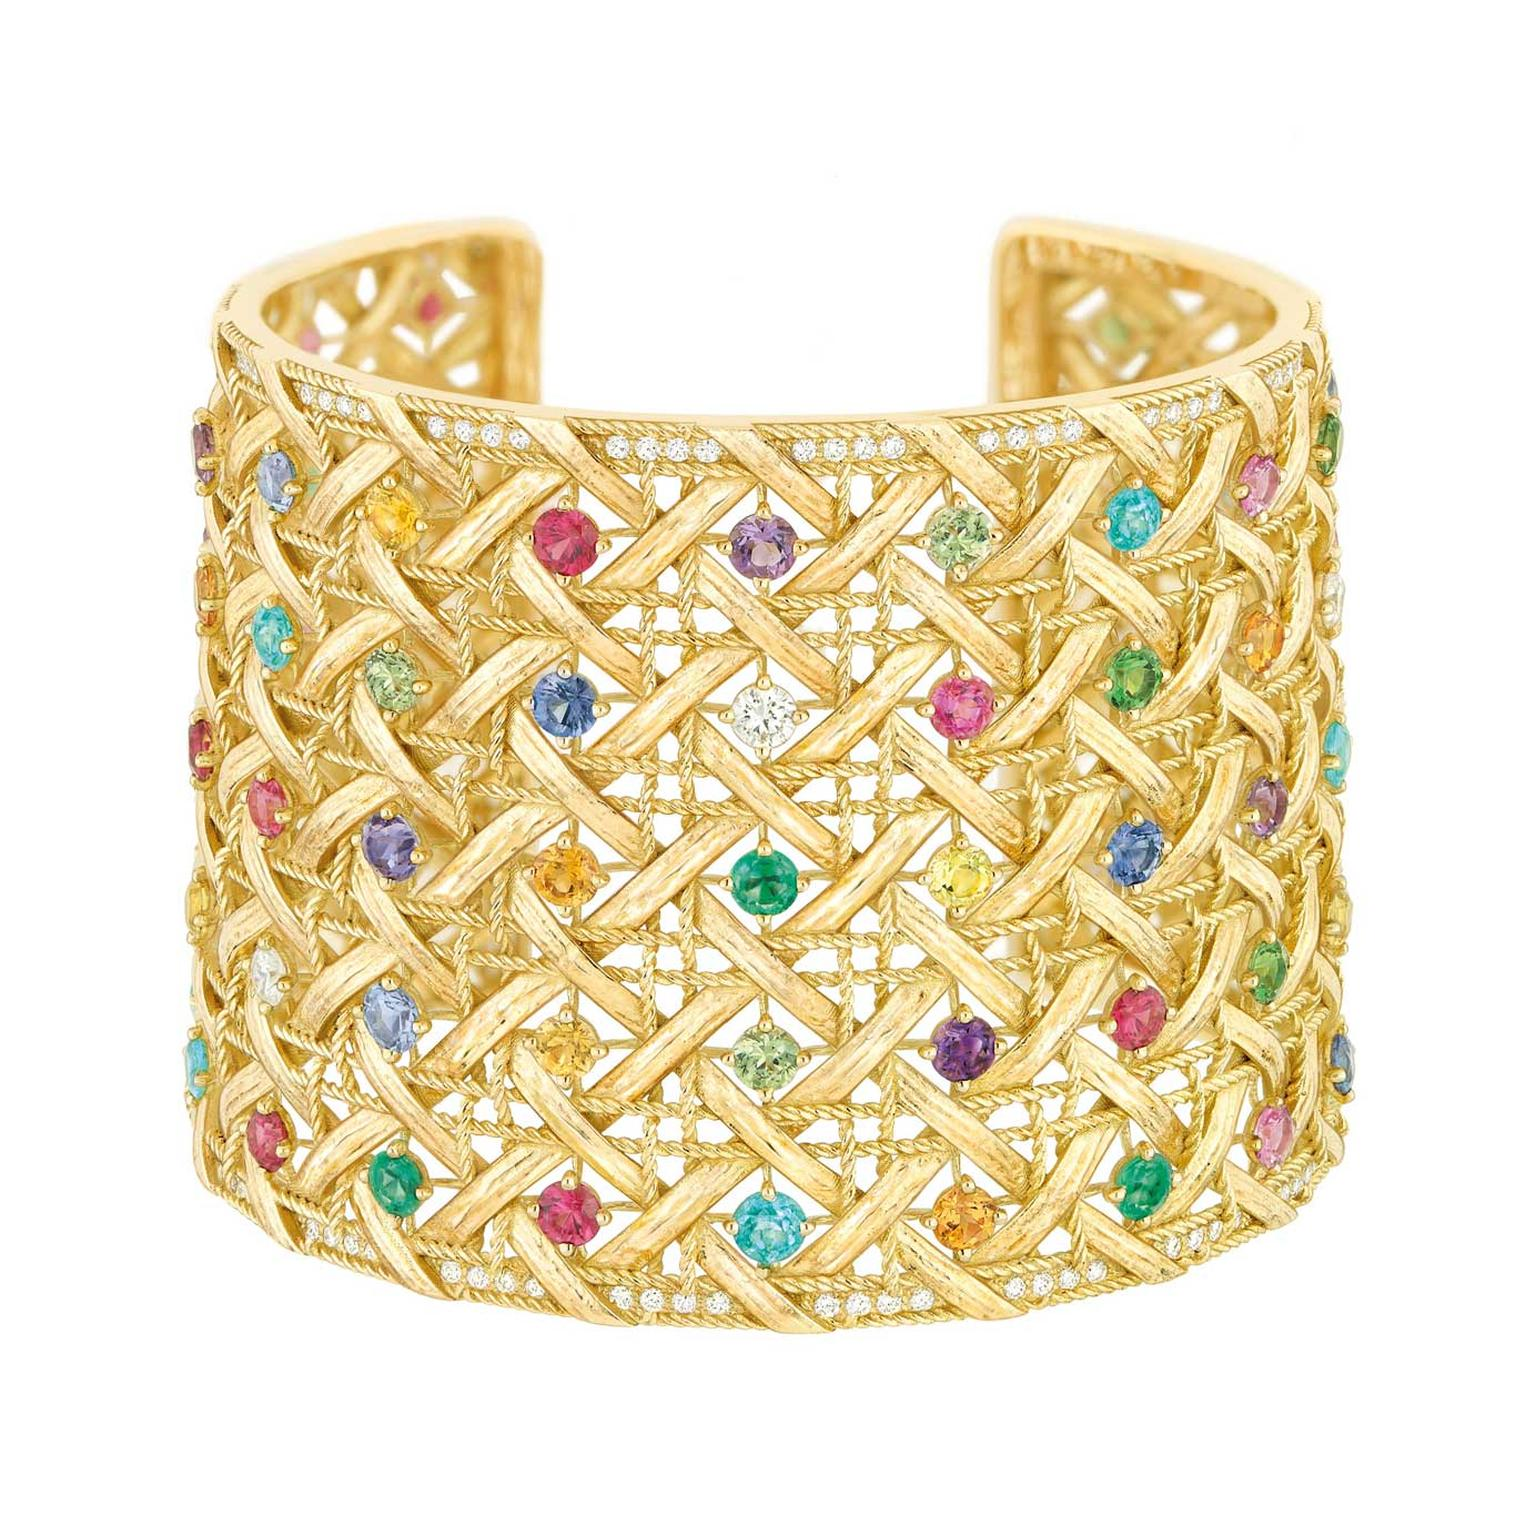 My Dior gold cuff with diamonds and coloured gemstones.